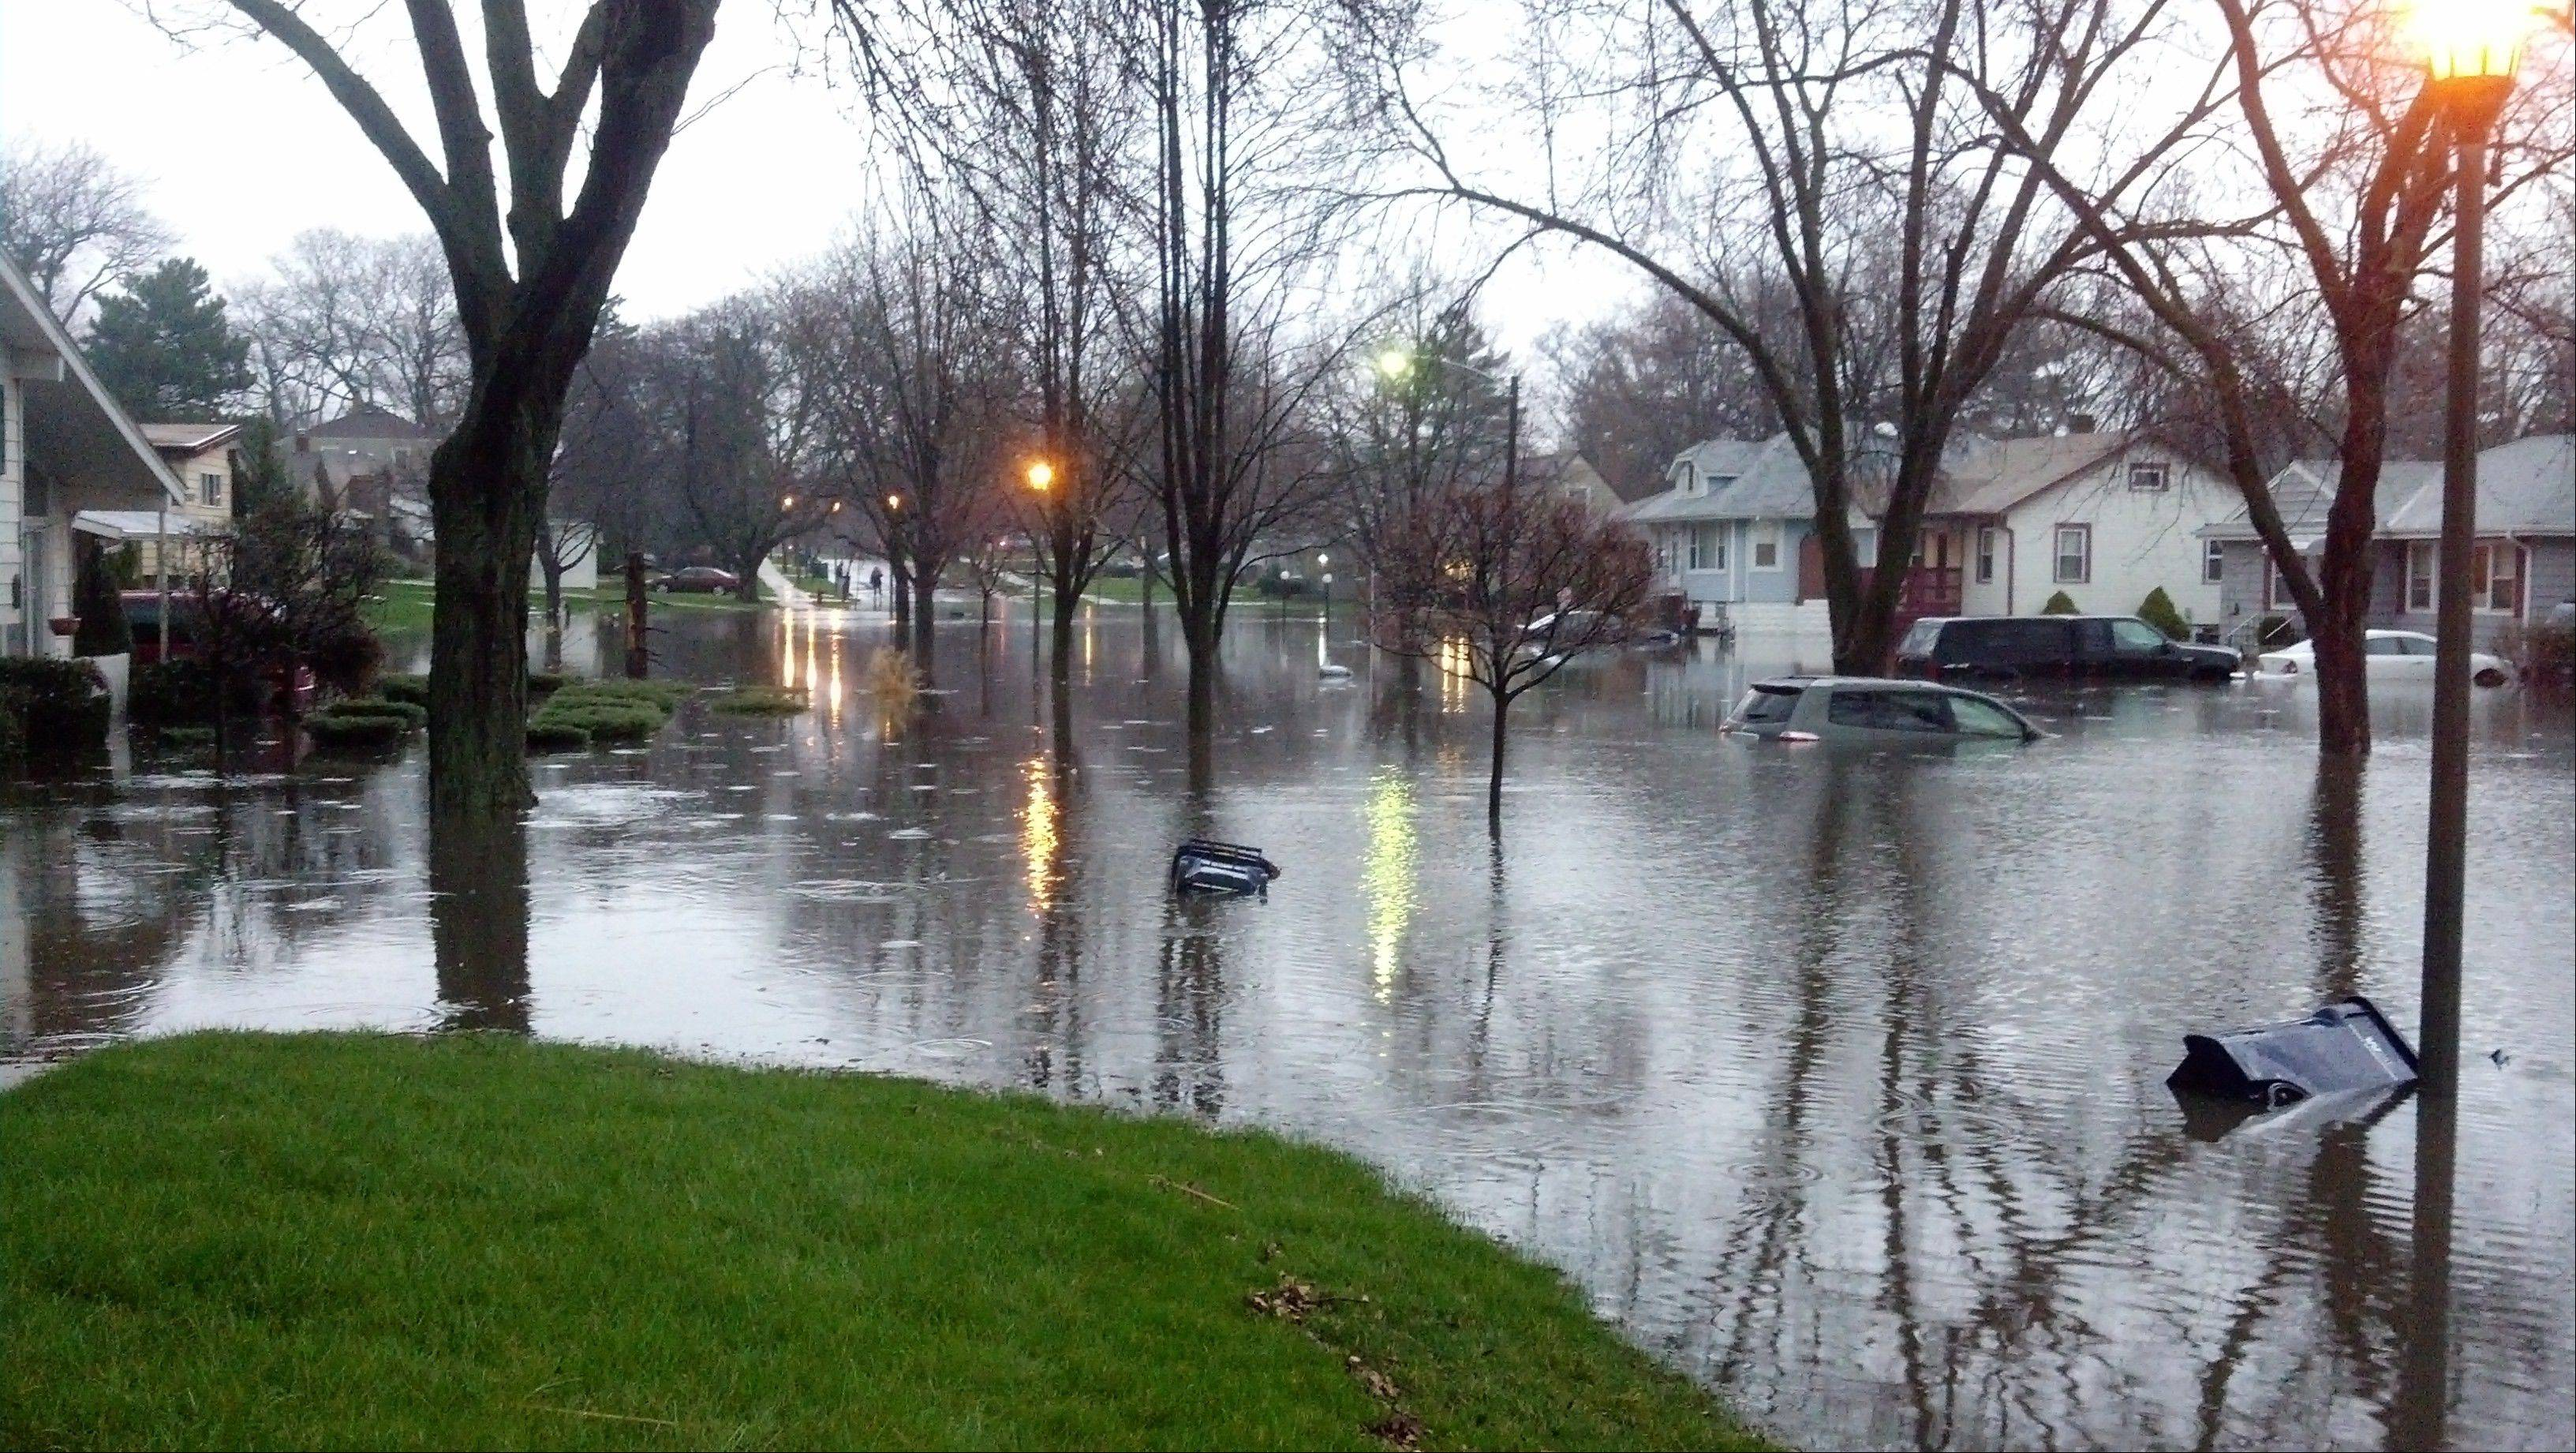 Vehicles were submerged Thursday morning at the intersection of Addison and Madison streets in Villa Park, where 9.35 inches of rain had fallen by 8:30 a.m.